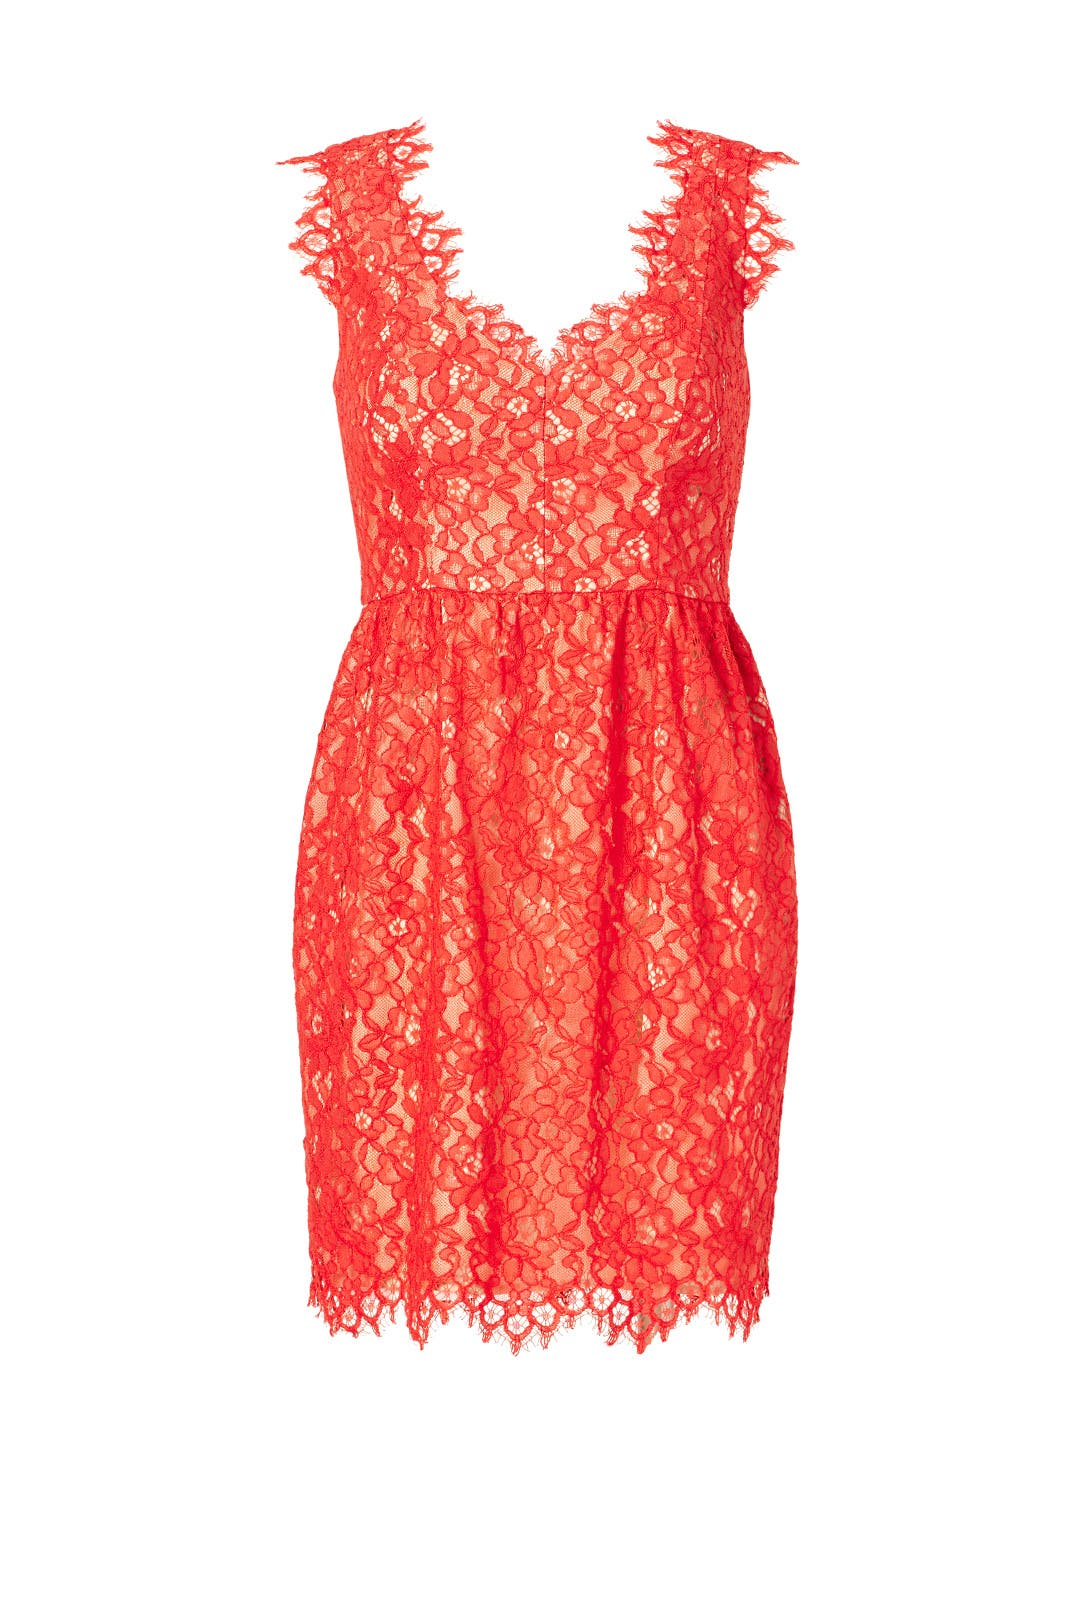 Shoshanna Dresses Sierra Lace Sierra Dress by Shoshanna